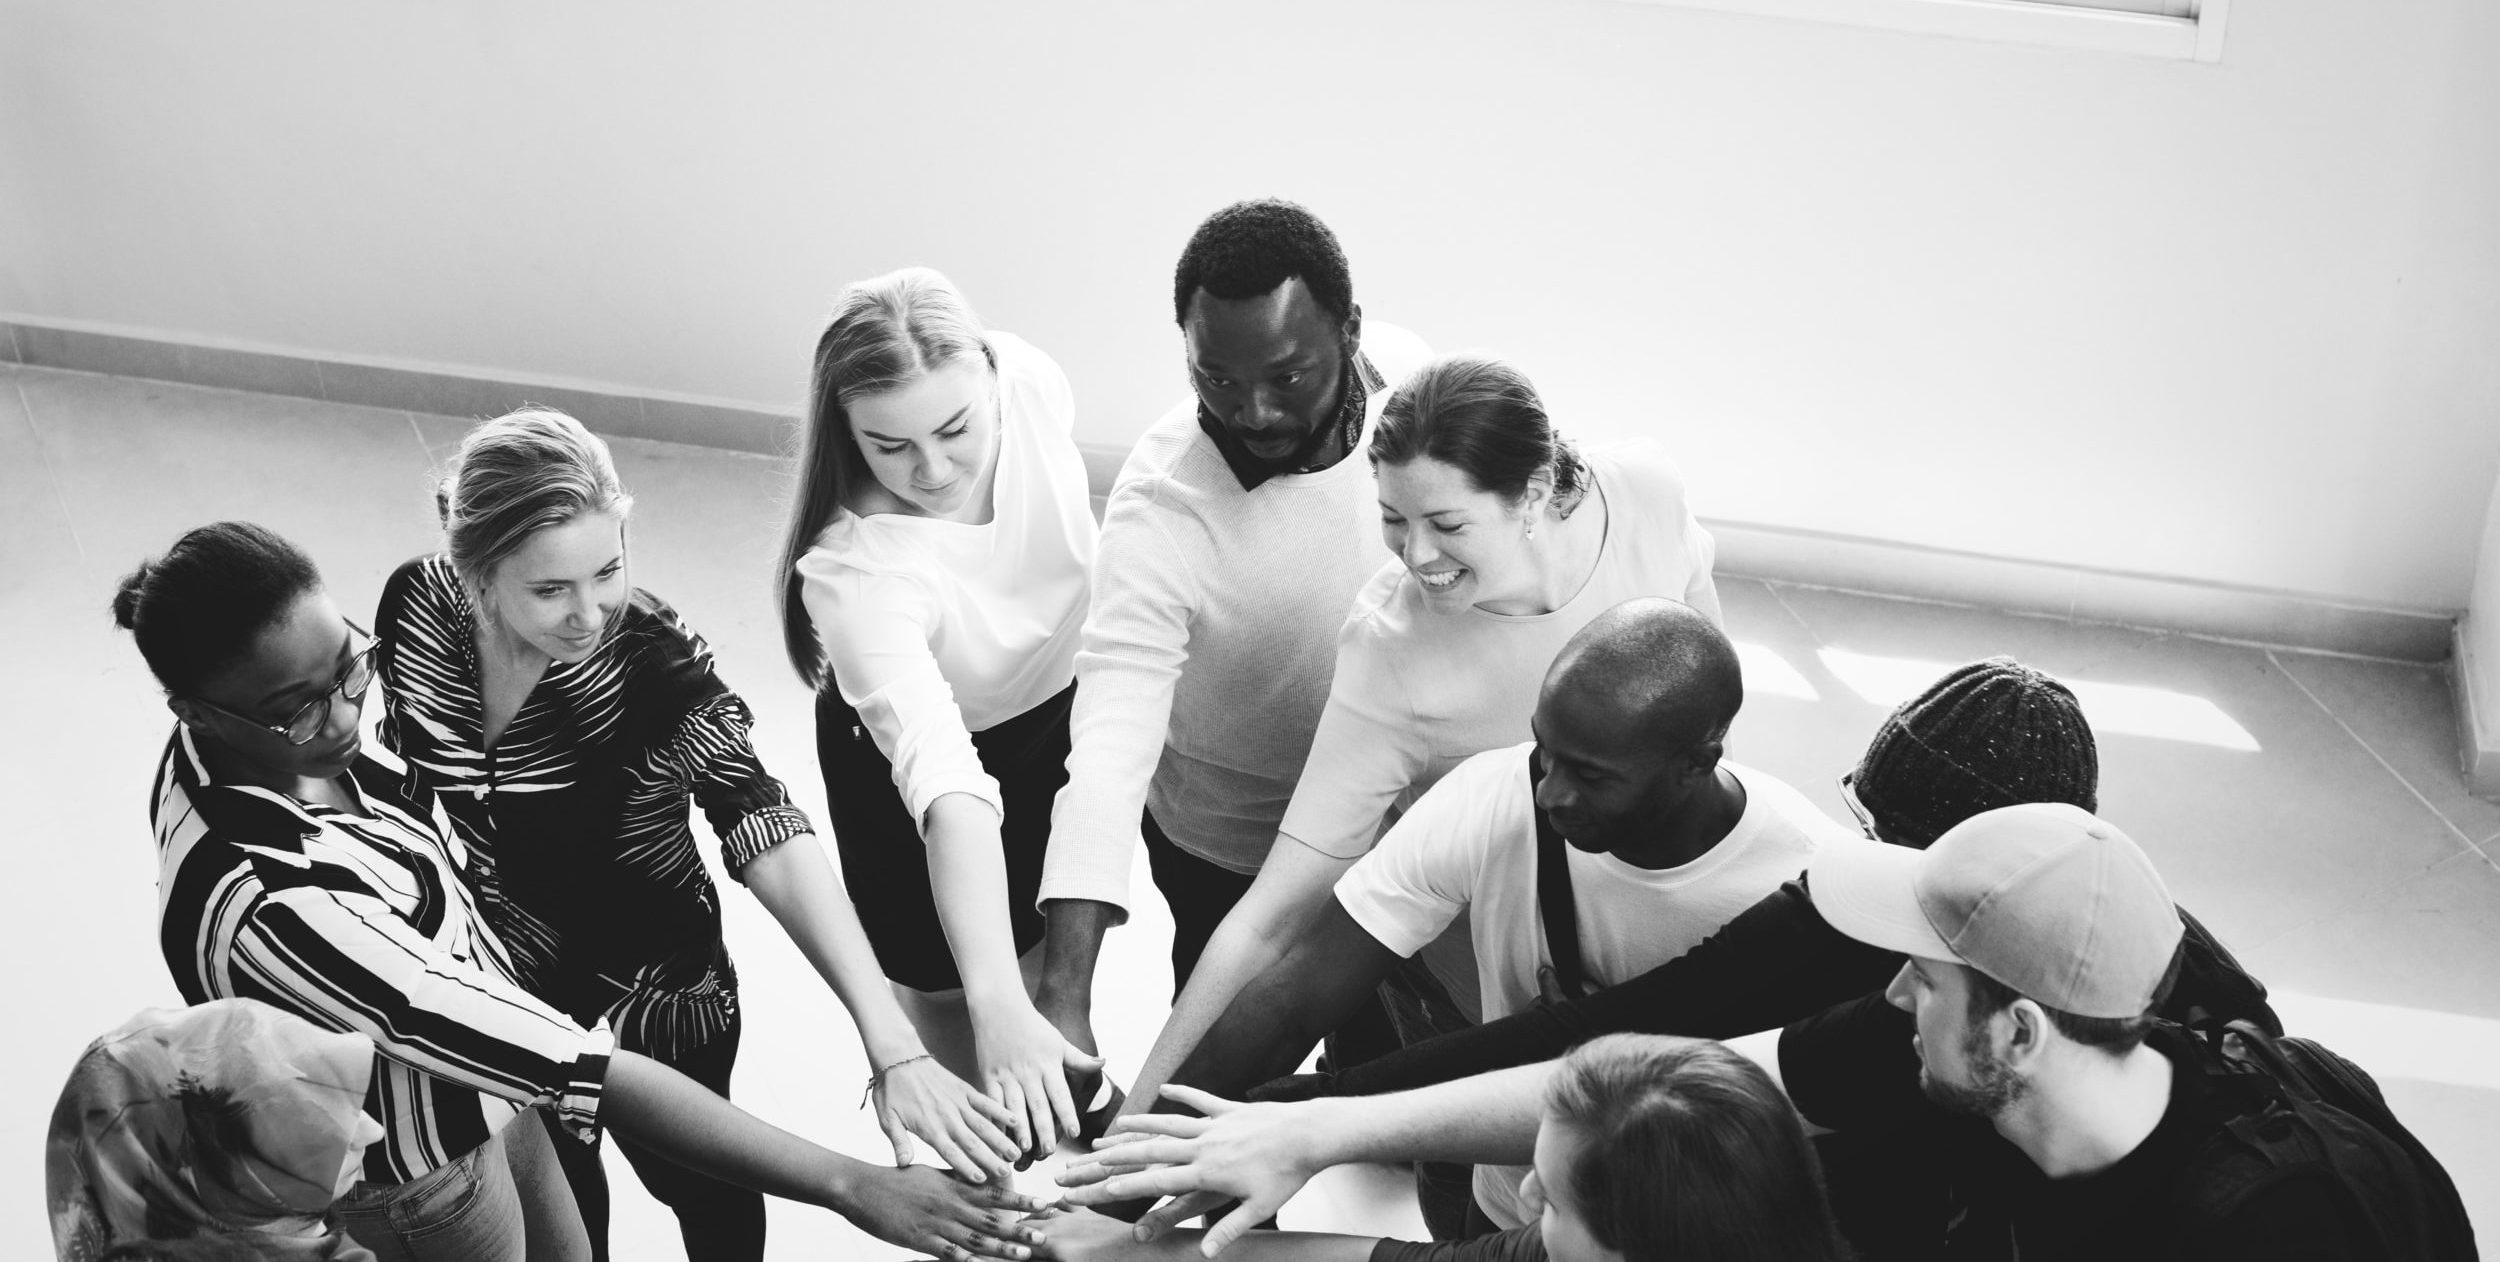 A black-and-white photo of a group joining hands in a circle, an expression of teamwork.